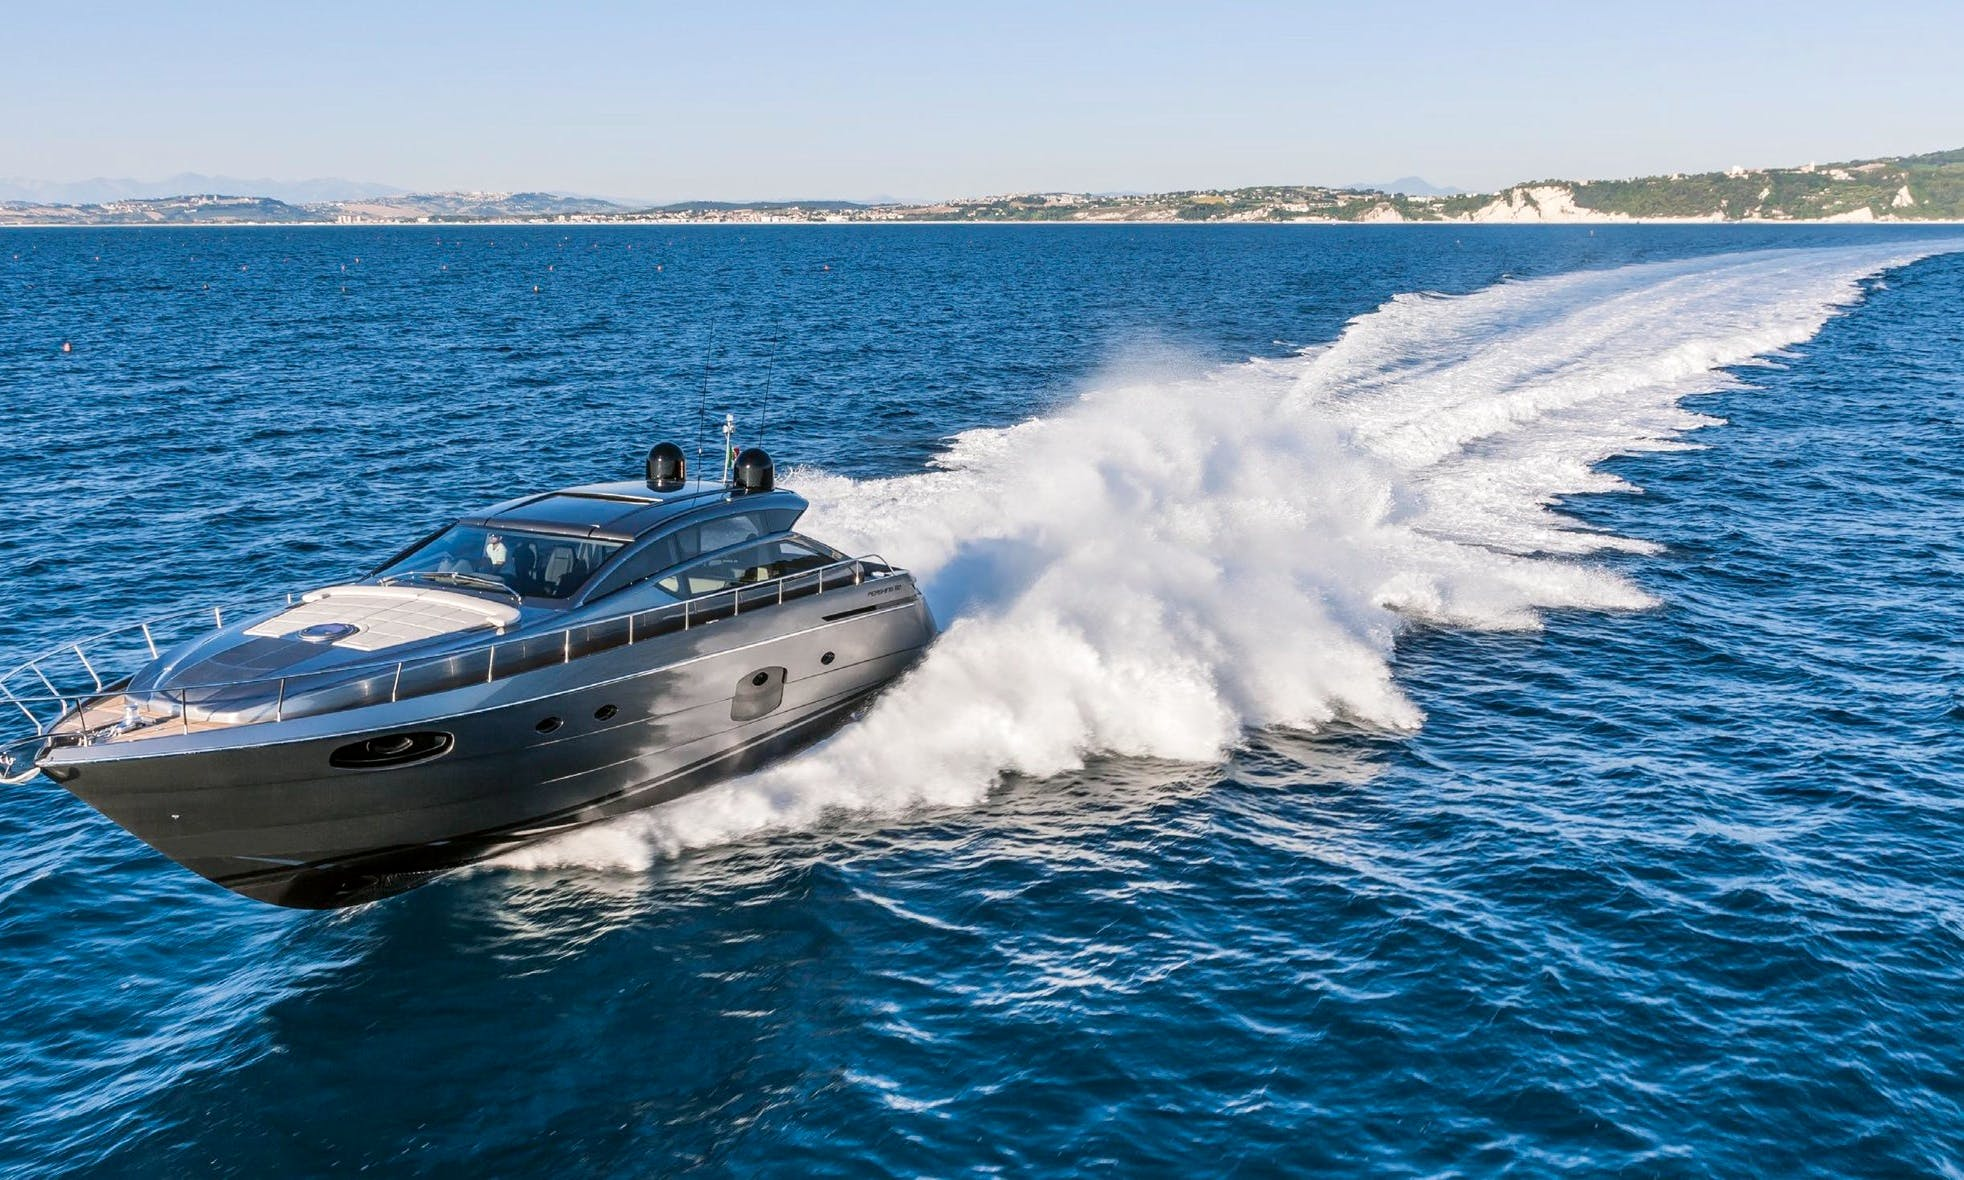 James Bond-esque Type of Experience and Ride with Pershing 62 Motor Yacht in Sag Harbor, New York